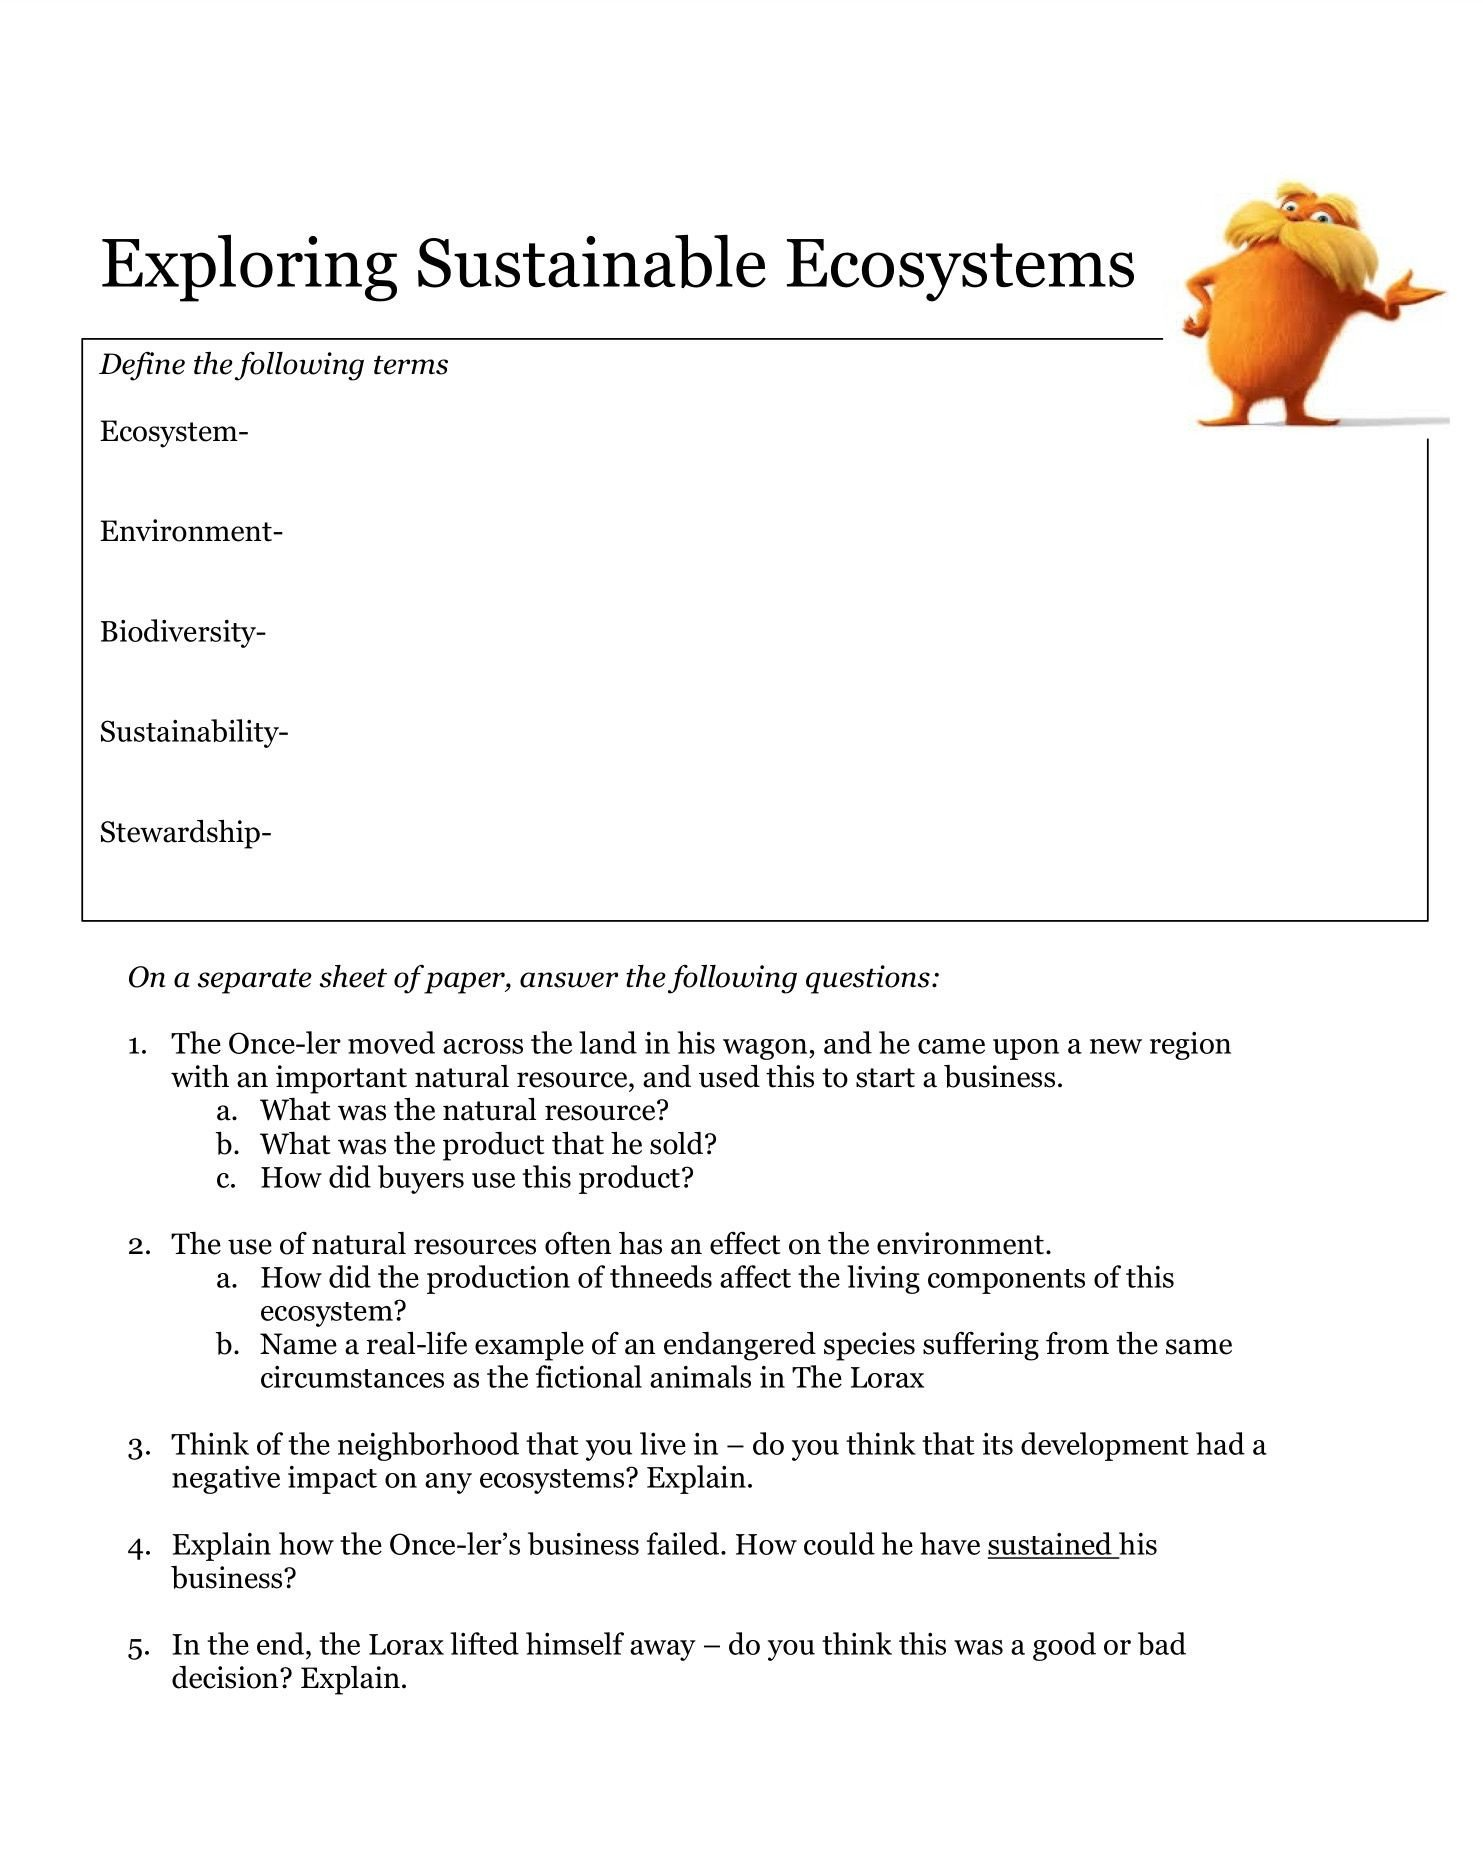 Ecosystem Worksheet Answer Key Introduction Sustainable Ecosystems Worksheet Thursday